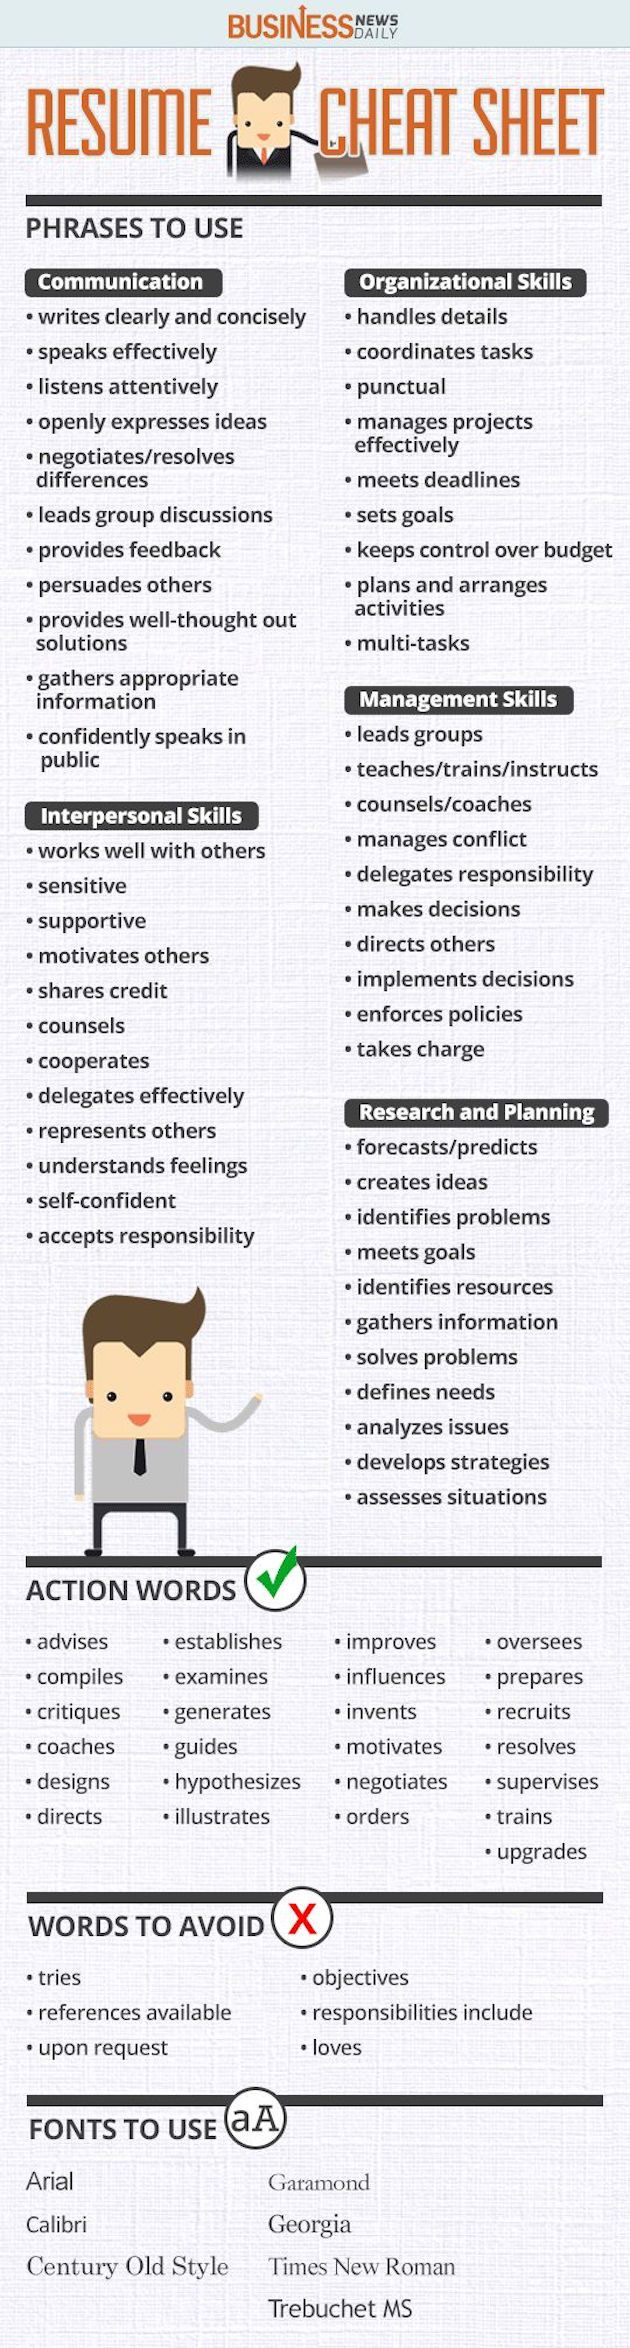 Resume Words To Use For Resume best 25 resume words ideas on pinterest these are all the you should use a to make your normal skills